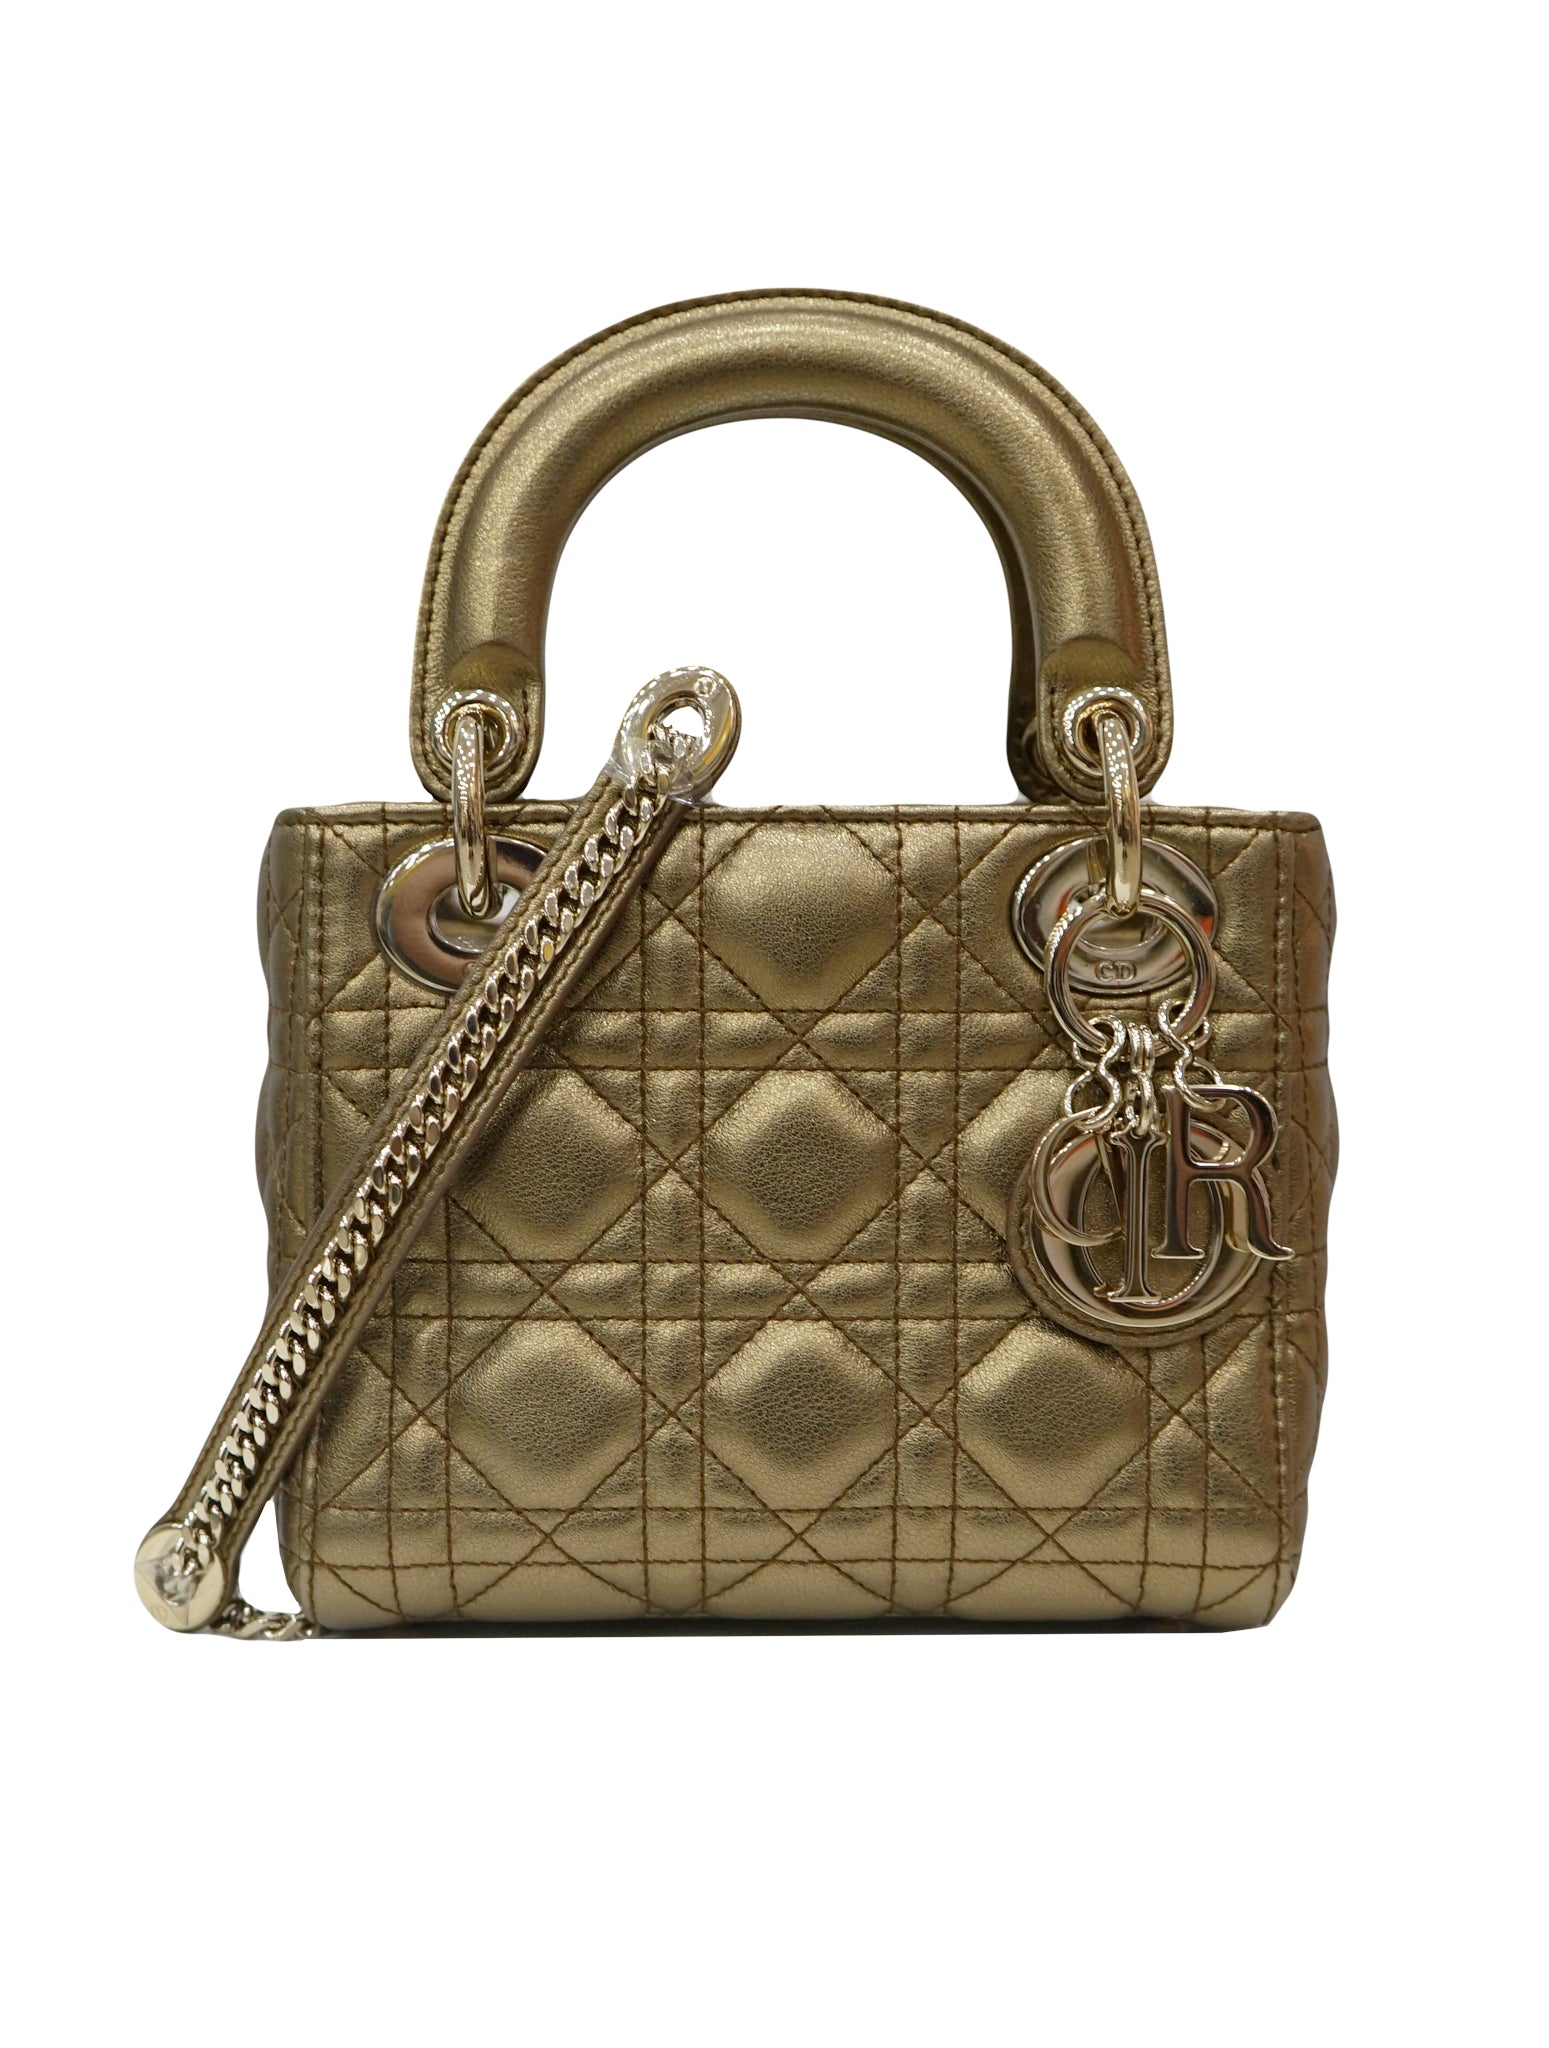 METALLIC GOLD LADY DIOR LAMBSKIN BAG